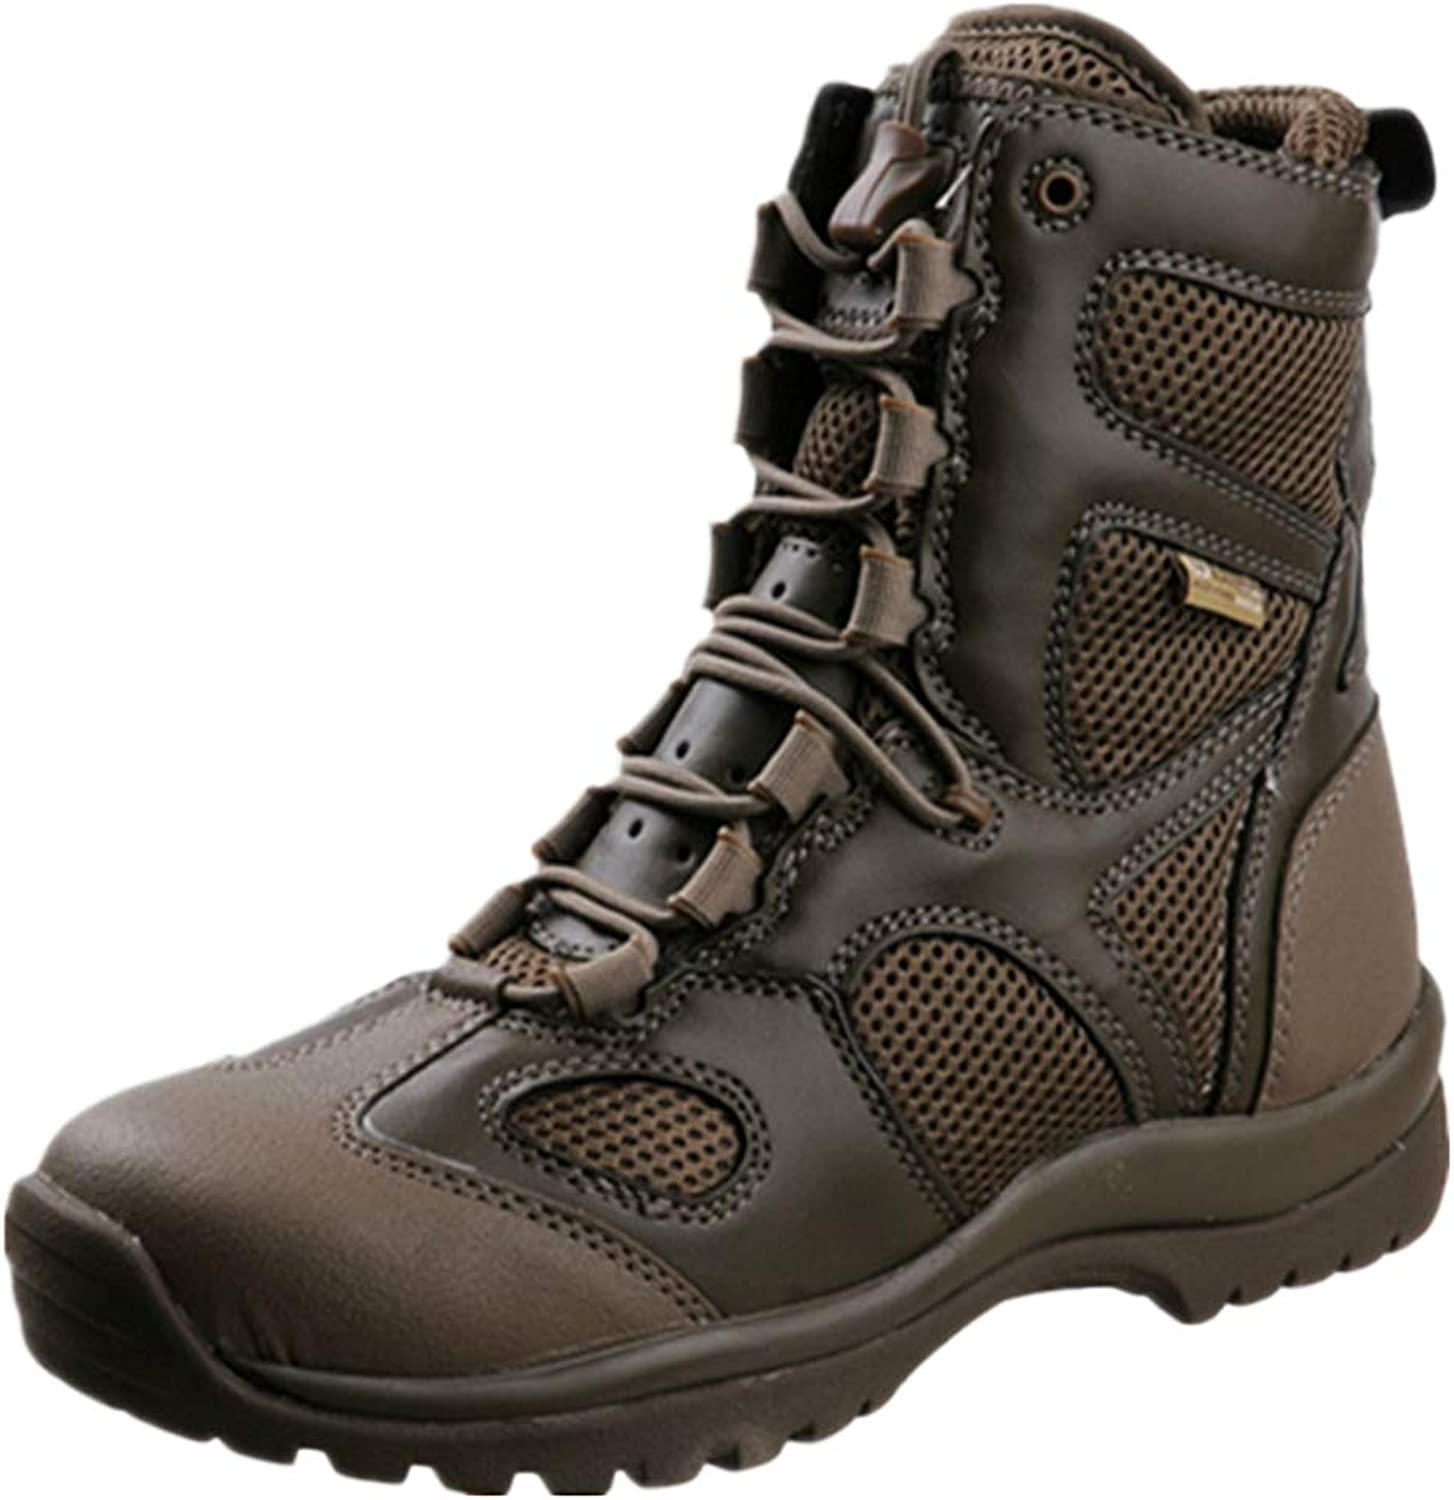 DSFGHE Men's Boots Patrol Military Tactical High Top Lace-ups Boots Breathable Outdoor Combat BootsLightweight